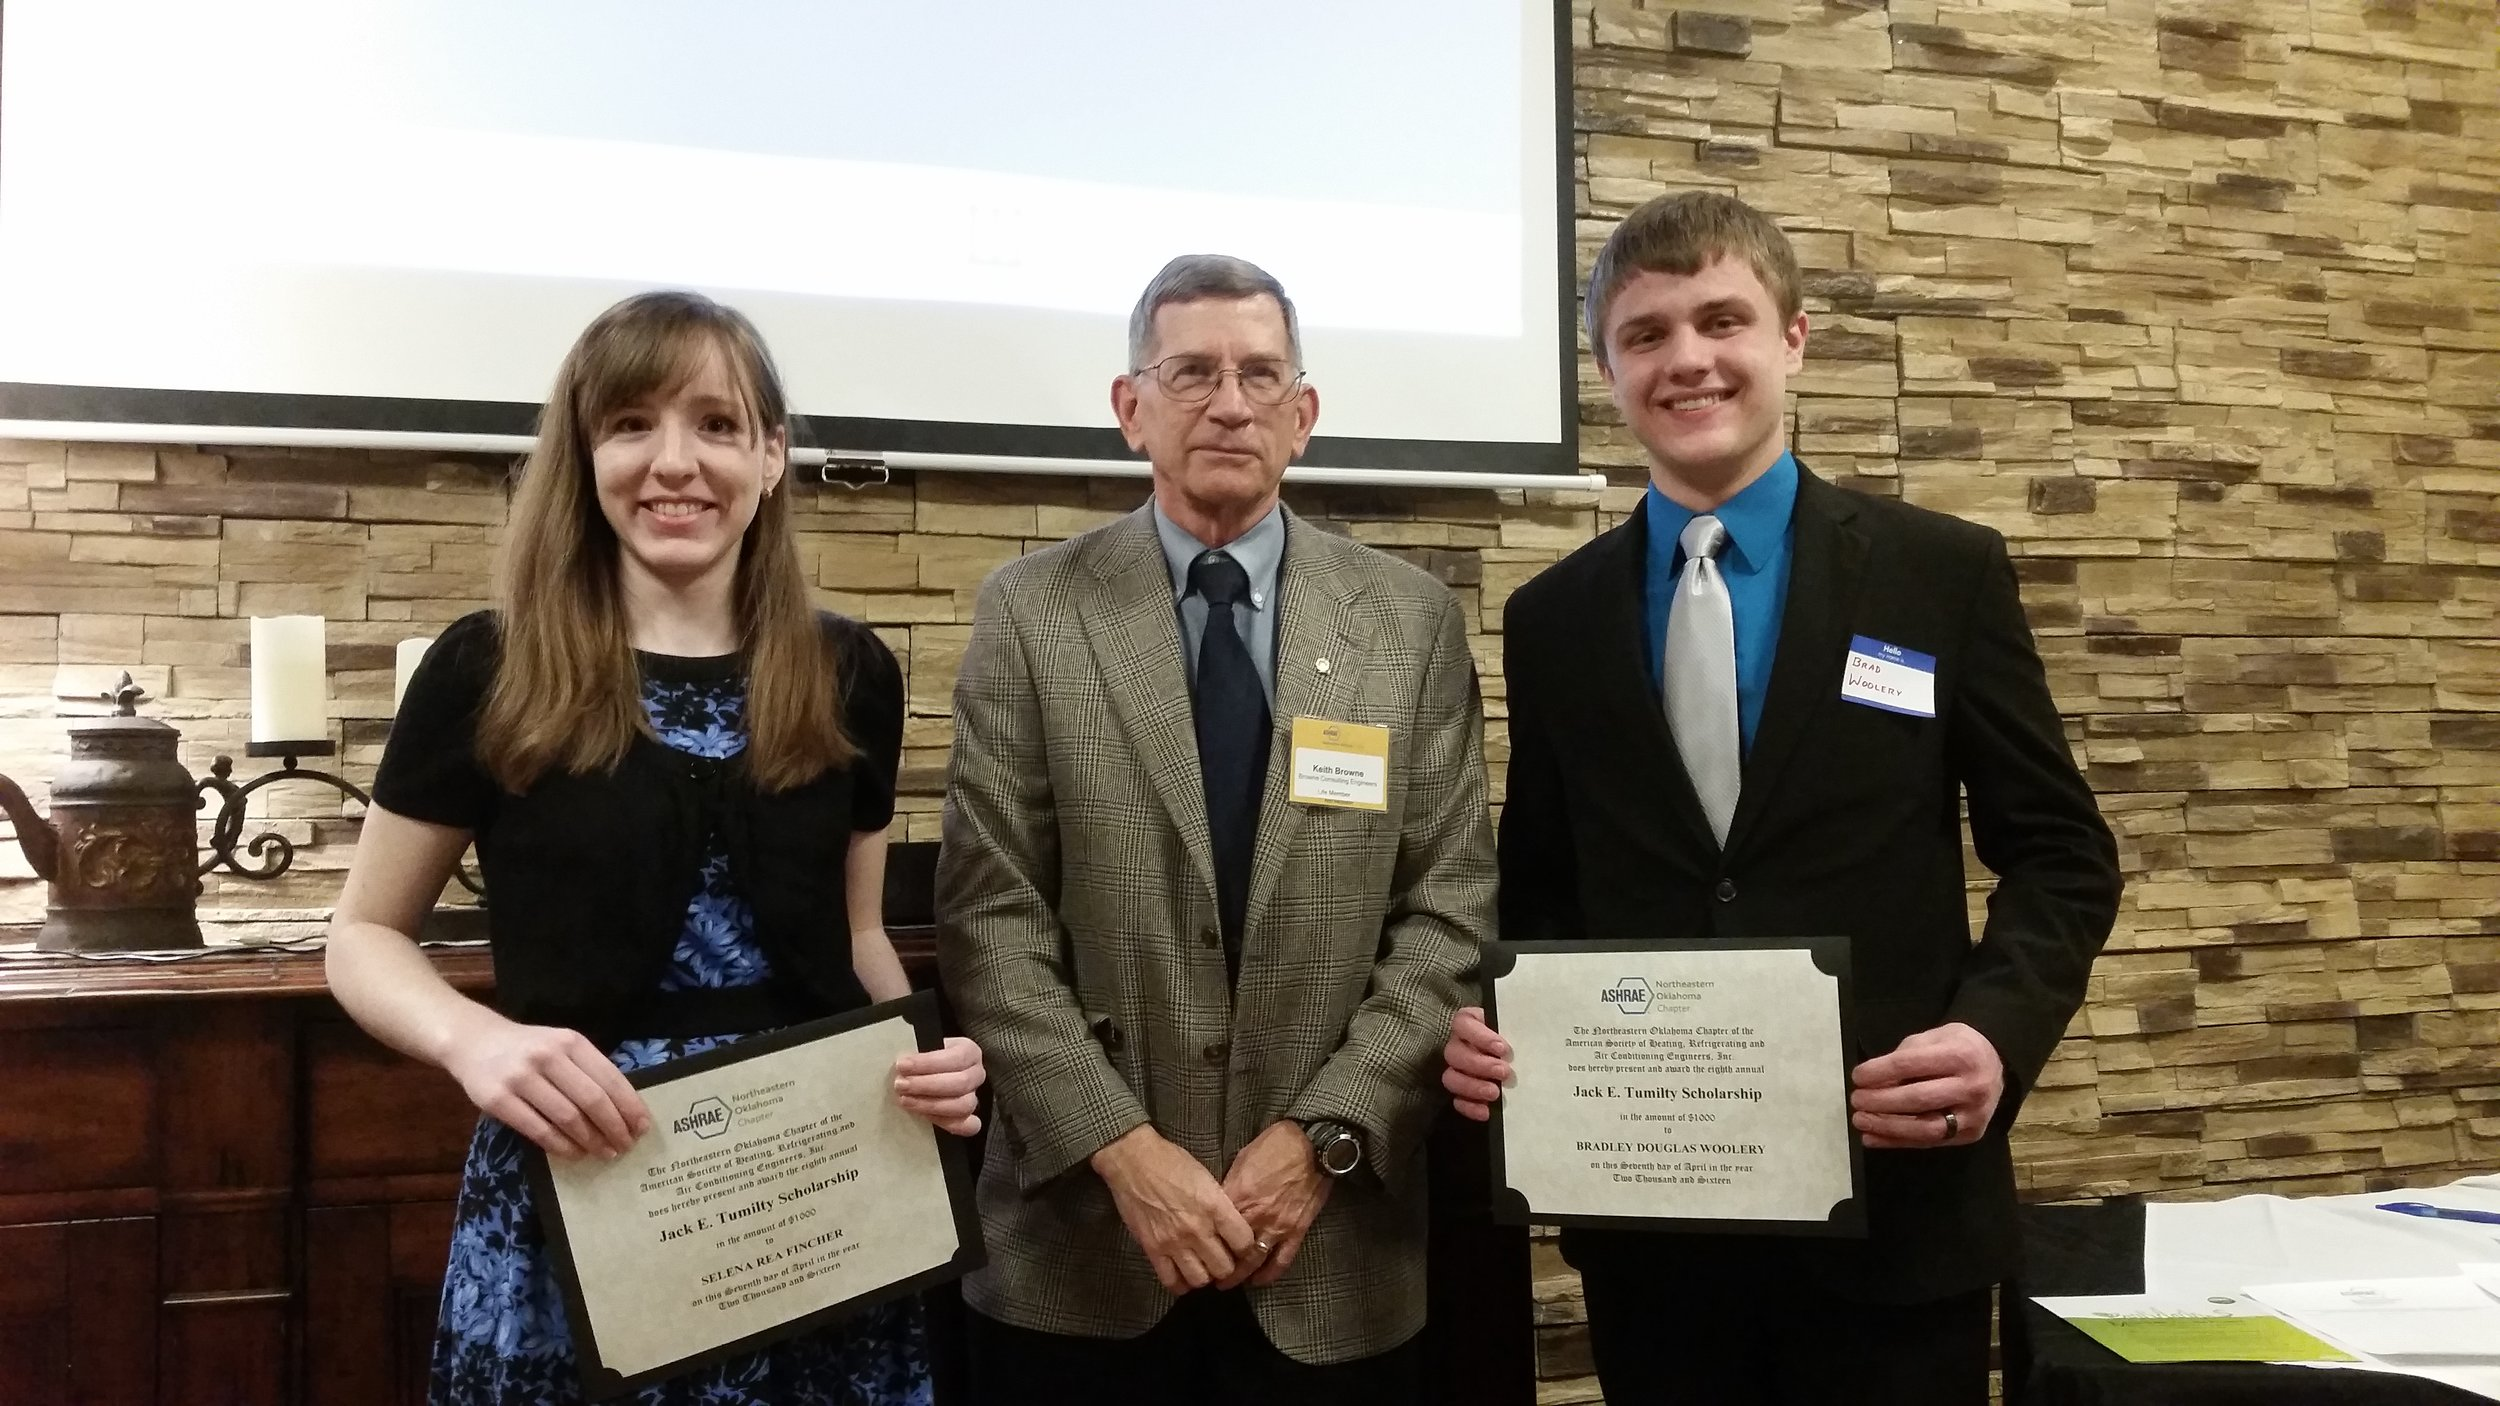 Tumilty Scholarship Recipients: Selena Fincher (left) and Brad Woolery (right) with Keith Browne.